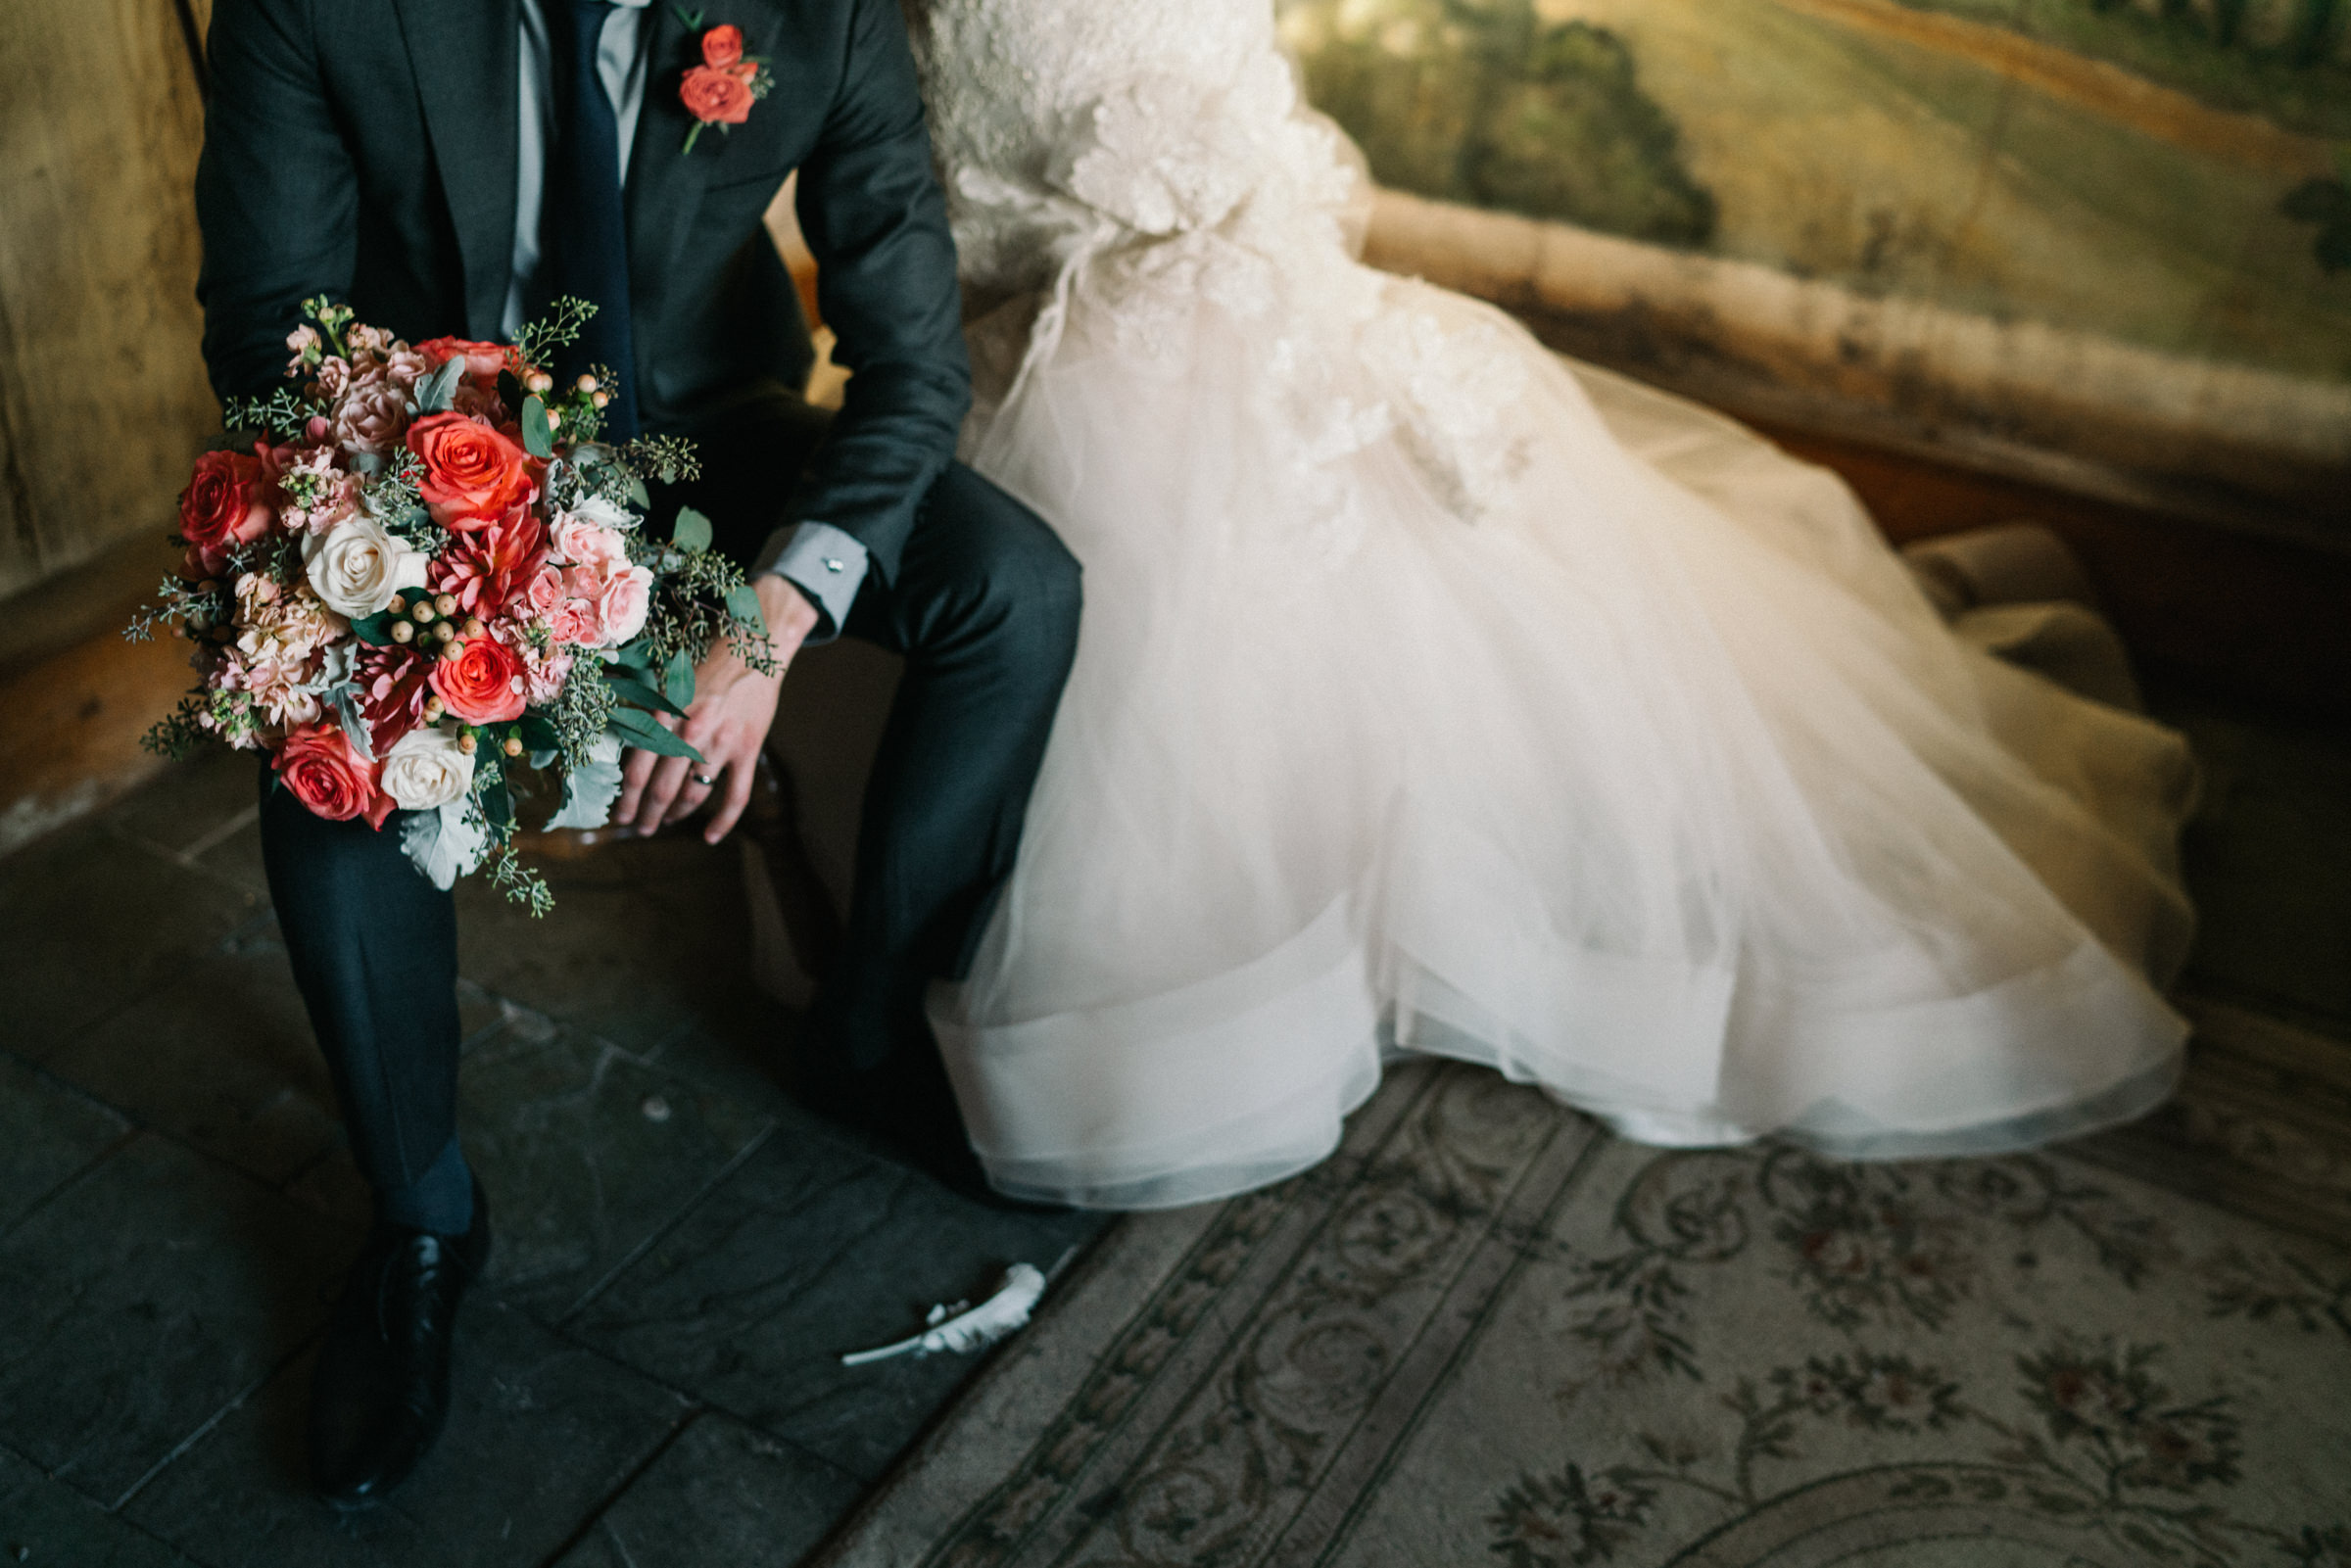 Detail of elegant bridal gown and groom with bouquet - photo by Sasha Reiko Photography